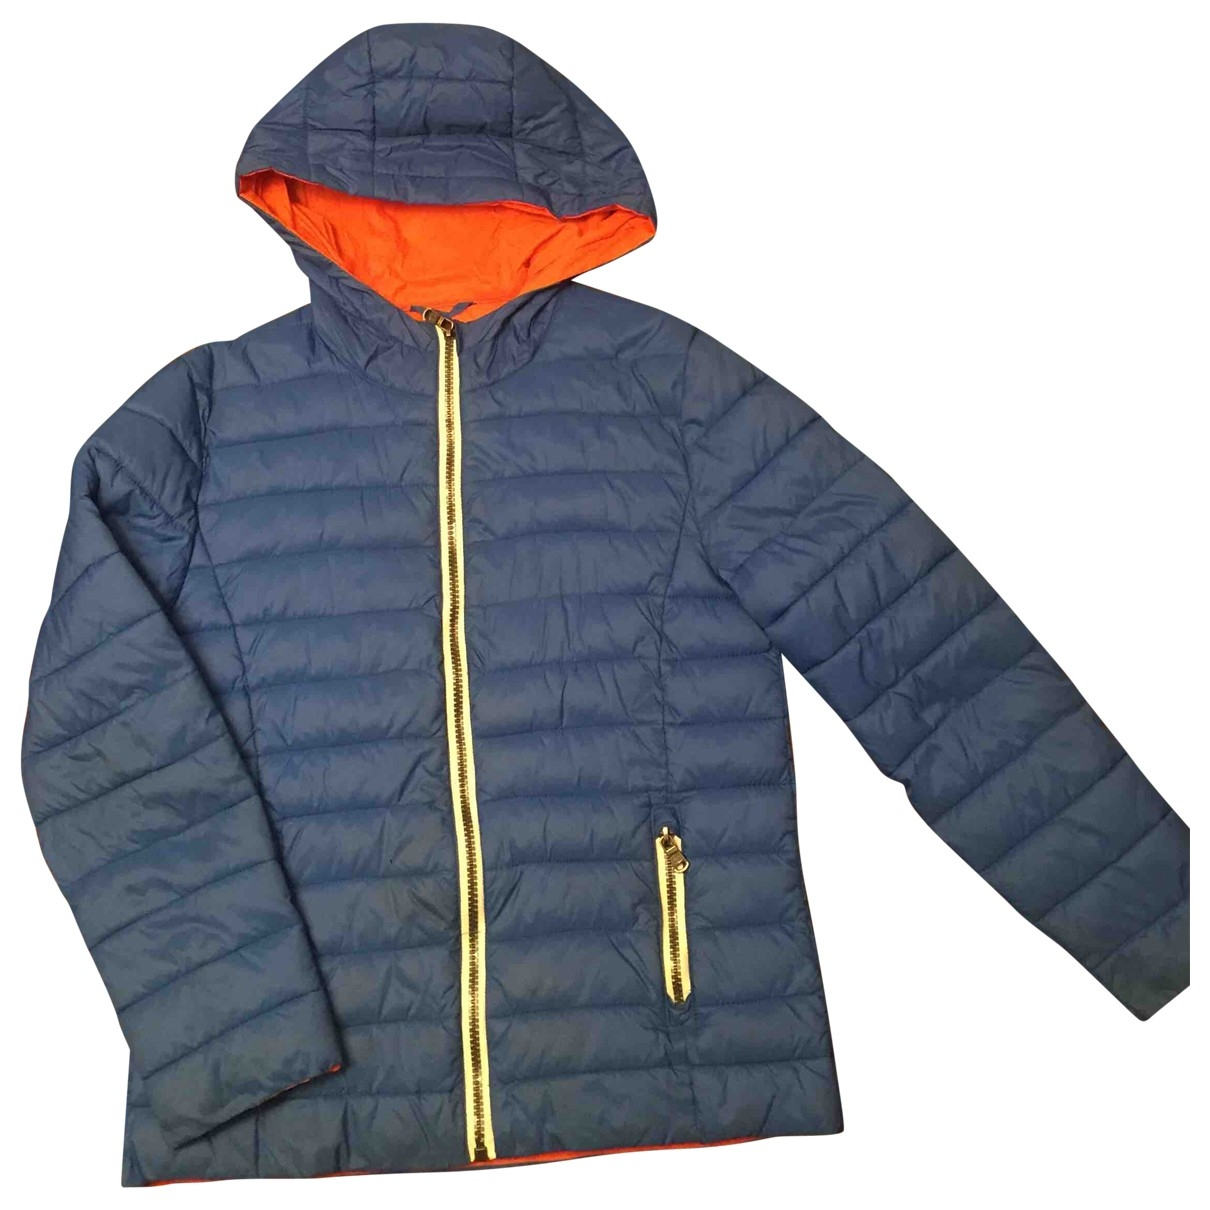 Champion \N Blue jacket & coat for Kids 10 years - up to 142cm FR